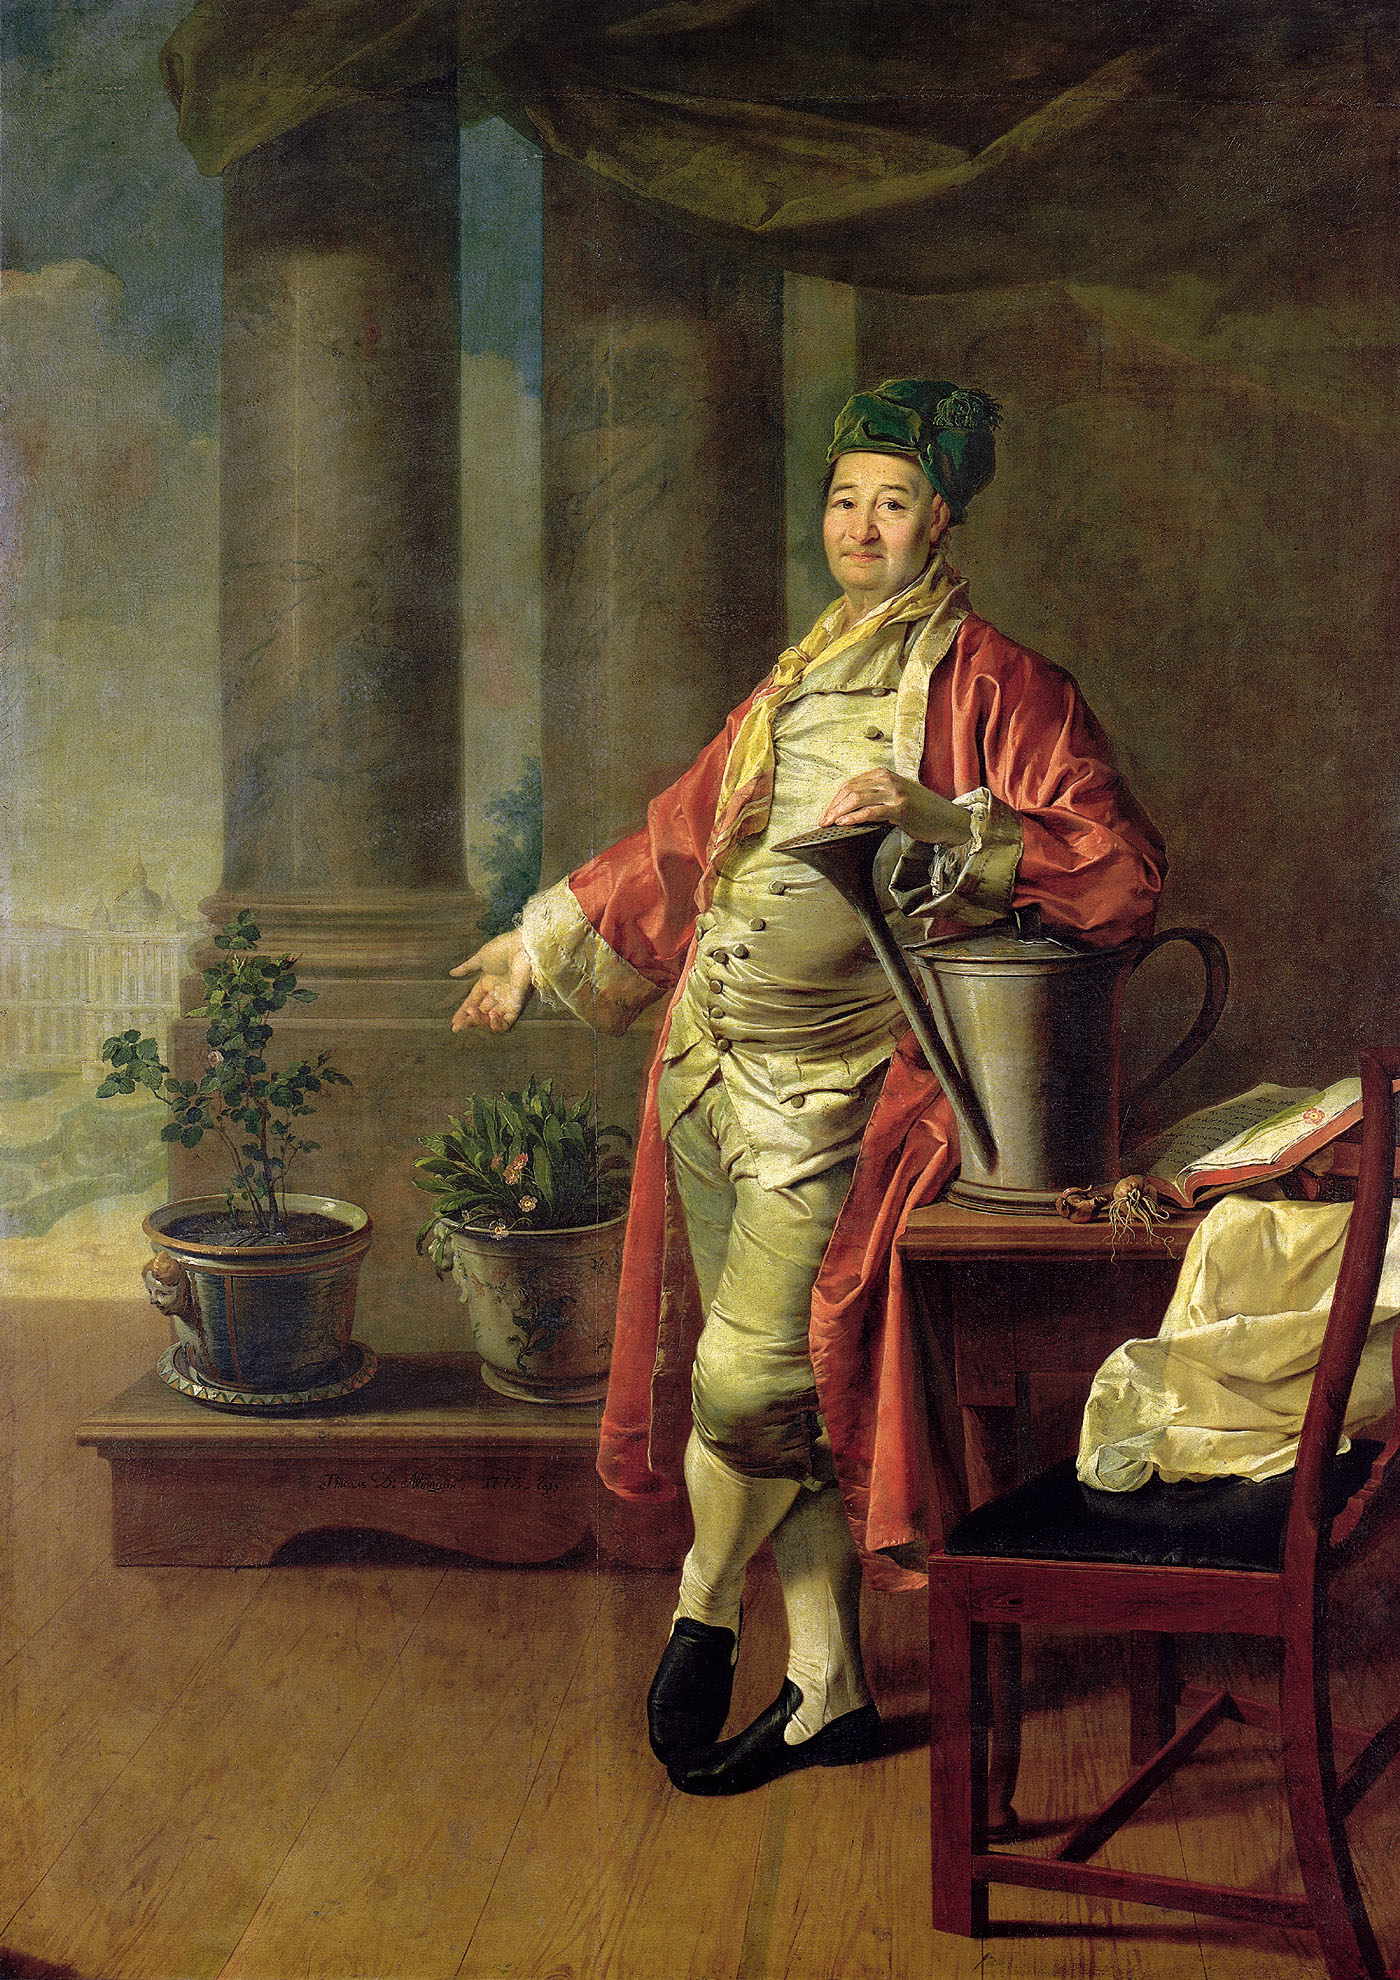 Dmitry Levitsky, Portrait of Prokofiy Demidov, 1773, The State Tretyakov Gallery, Moscow, Russia. Homewear Outfits for Wealthy Botanist. homewear outfits in art